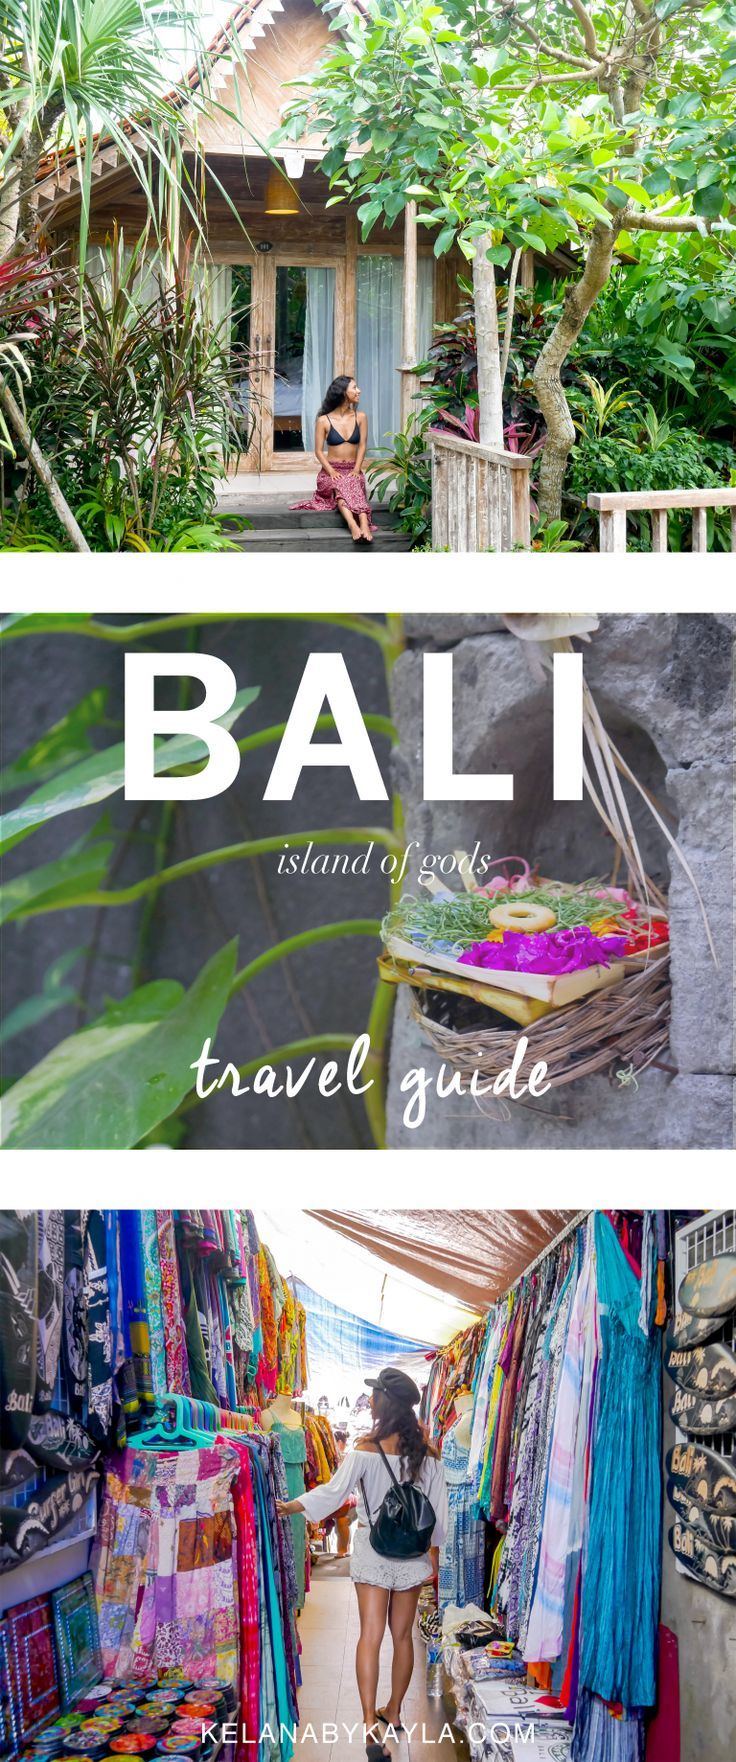 To some Bali is solely a vacation destination, but it has some insanely rich culture waiting to be explored! After many trips, here's our Bali Travel Guide. http://go.jeremy974.prodev.4.1tpe.net